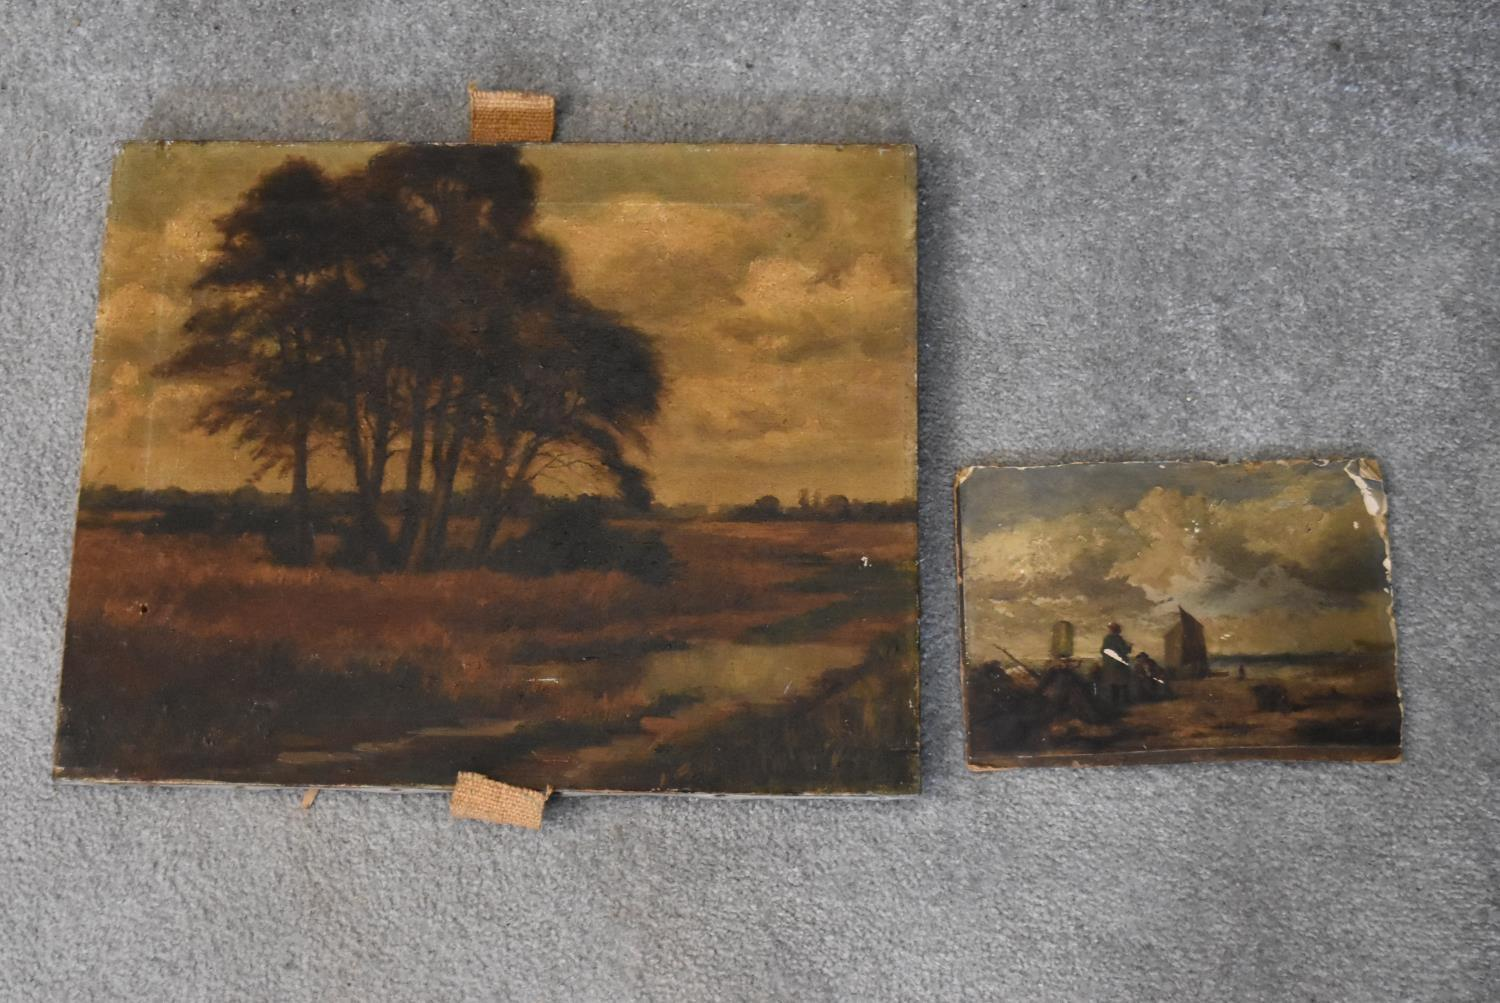 A 19th century unframed oil on canvas, riverscape with cathedral in the distance and a 19th